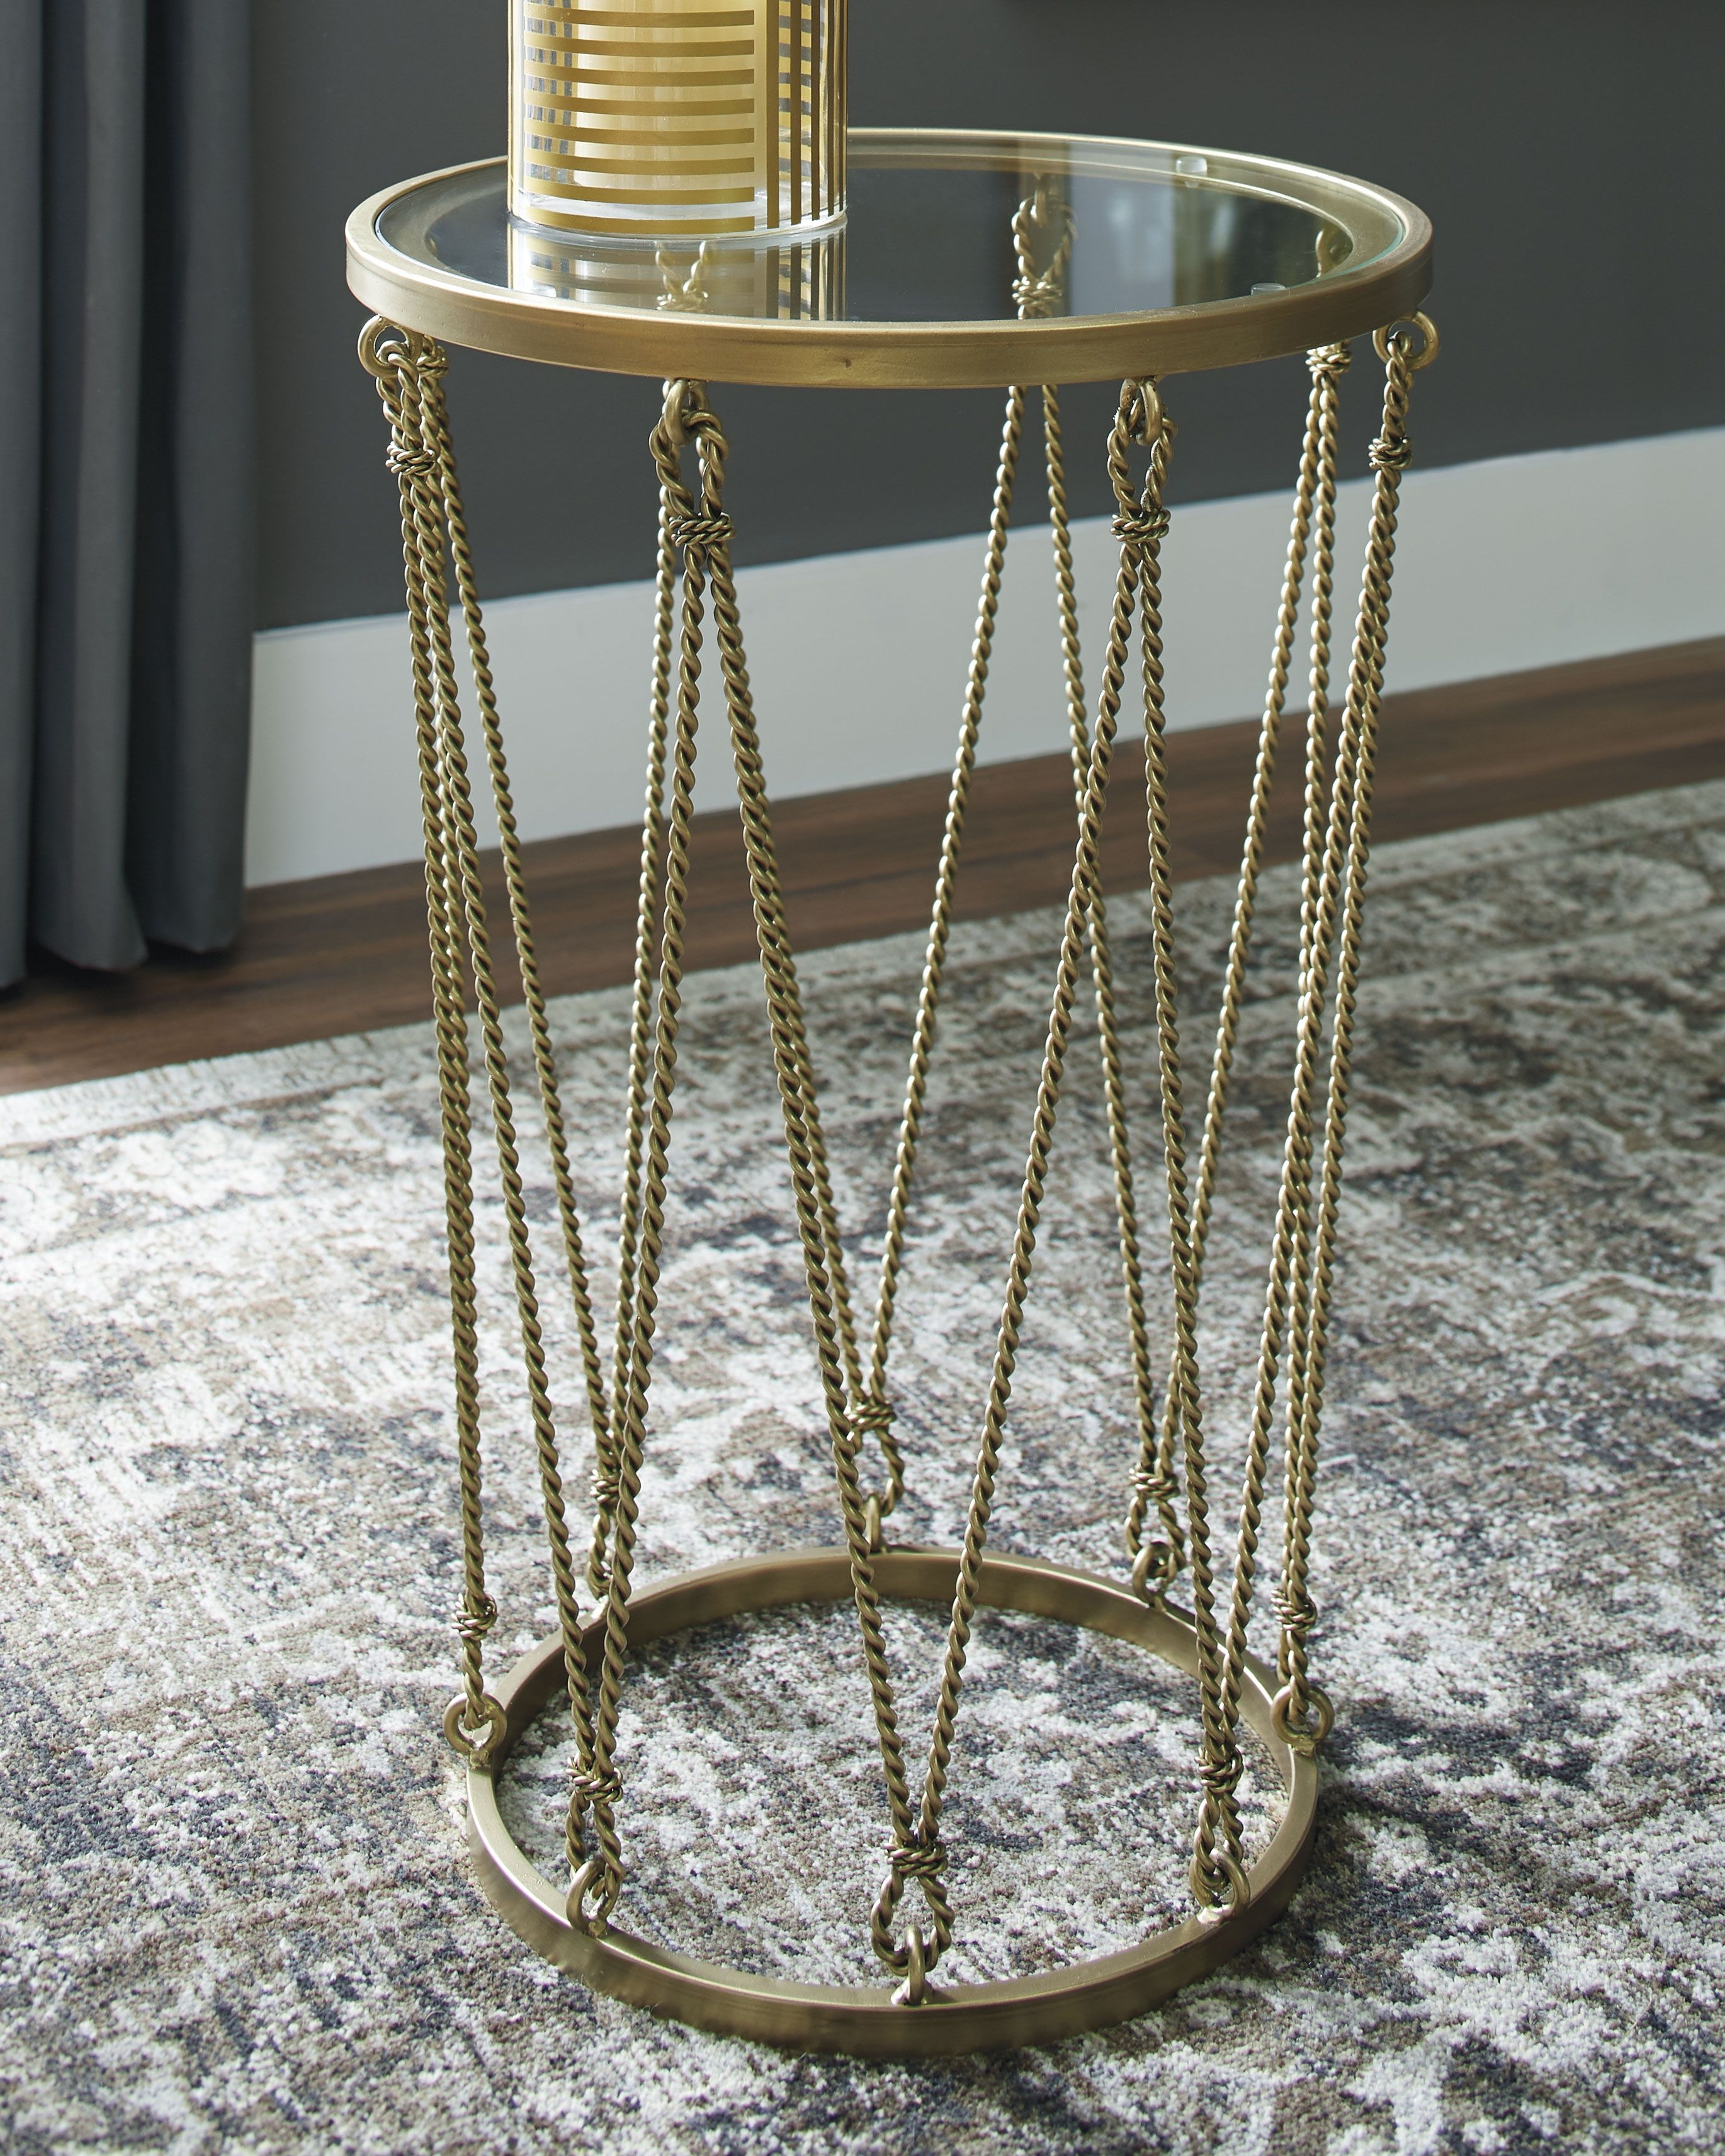 perfect home furniture mirimyn round accent table msrp pier one ott front porch and chairs counter pub weber kettle piece chair side set gold trunk coffee mirrored cube end